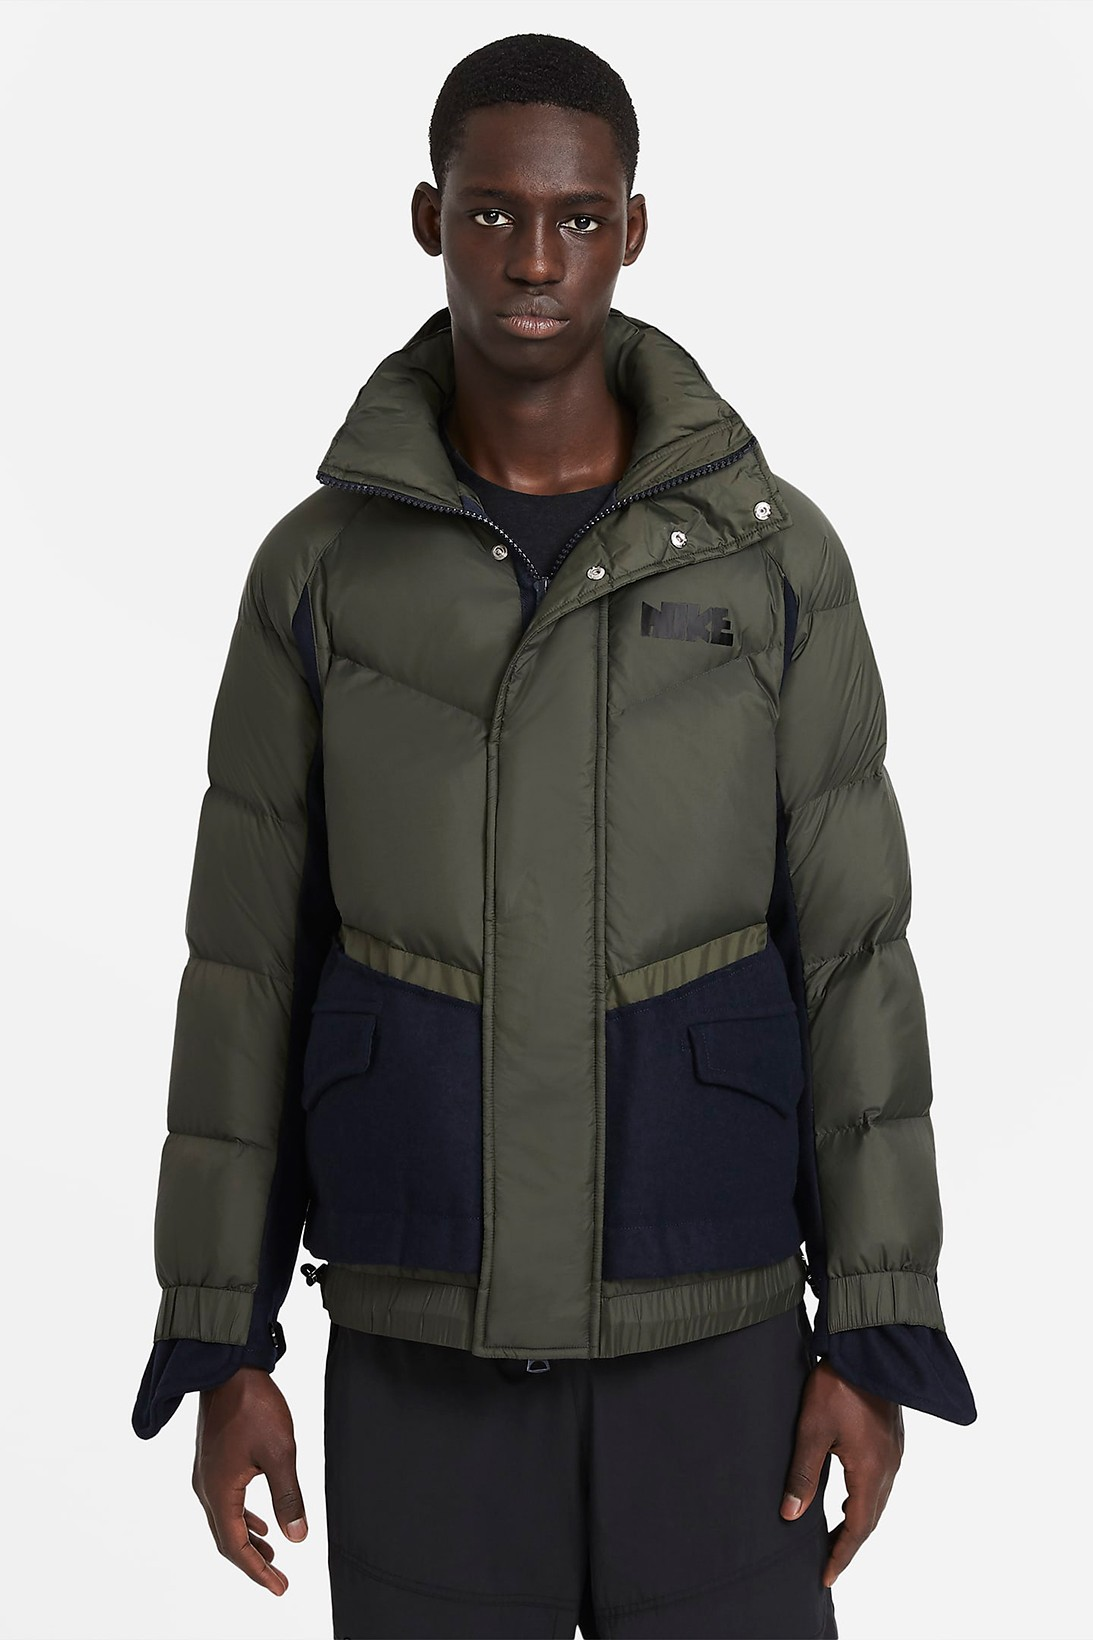 nike sacai chitose abe collaboration outerwear collection jackets puffers release date